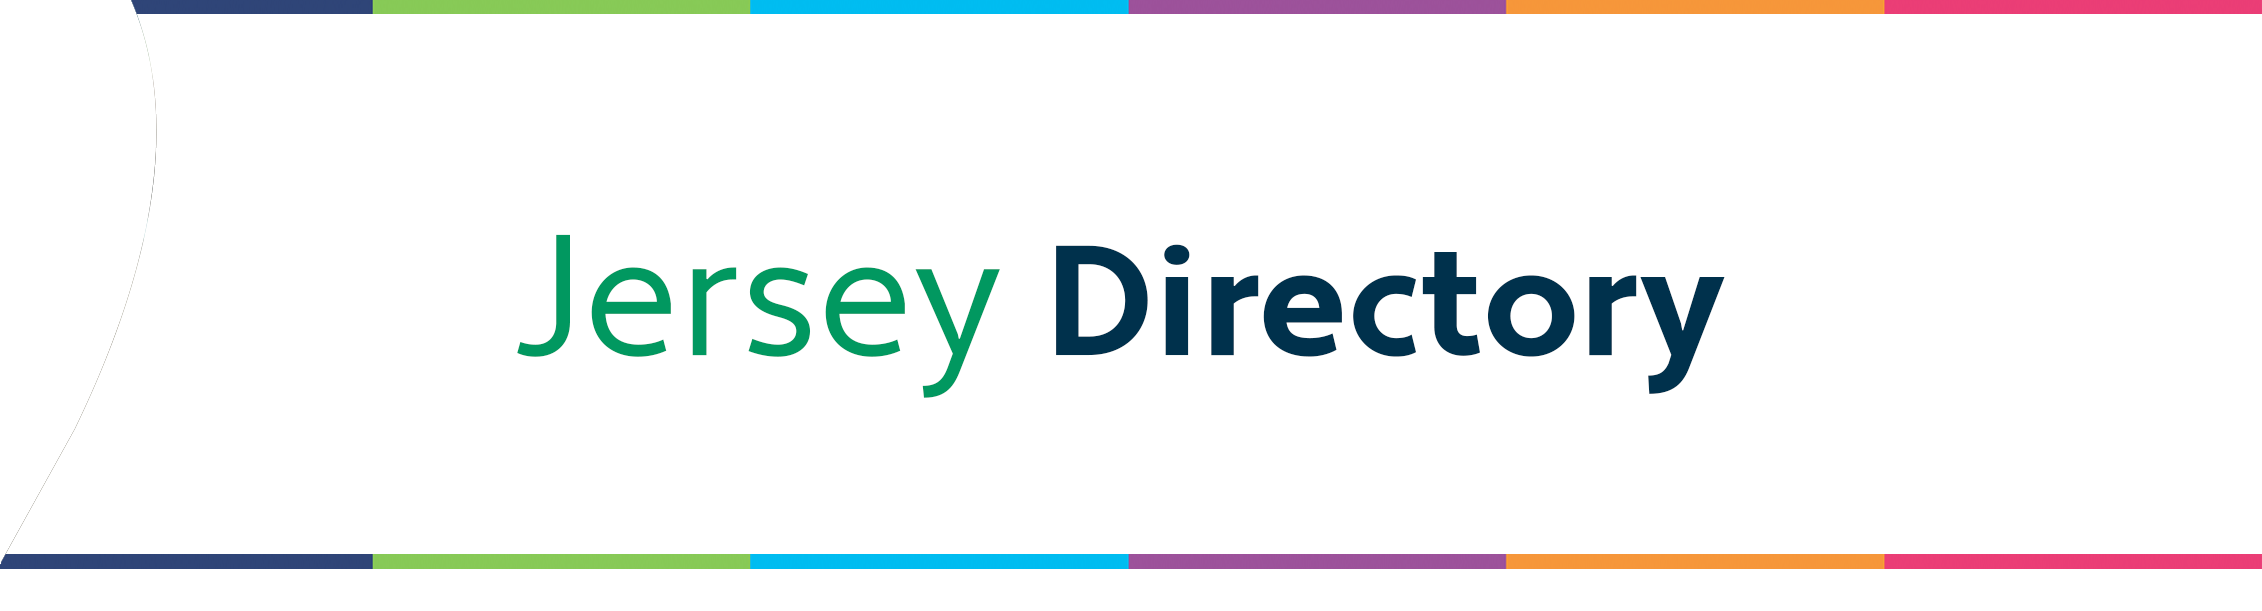 Jersey Directory Banner